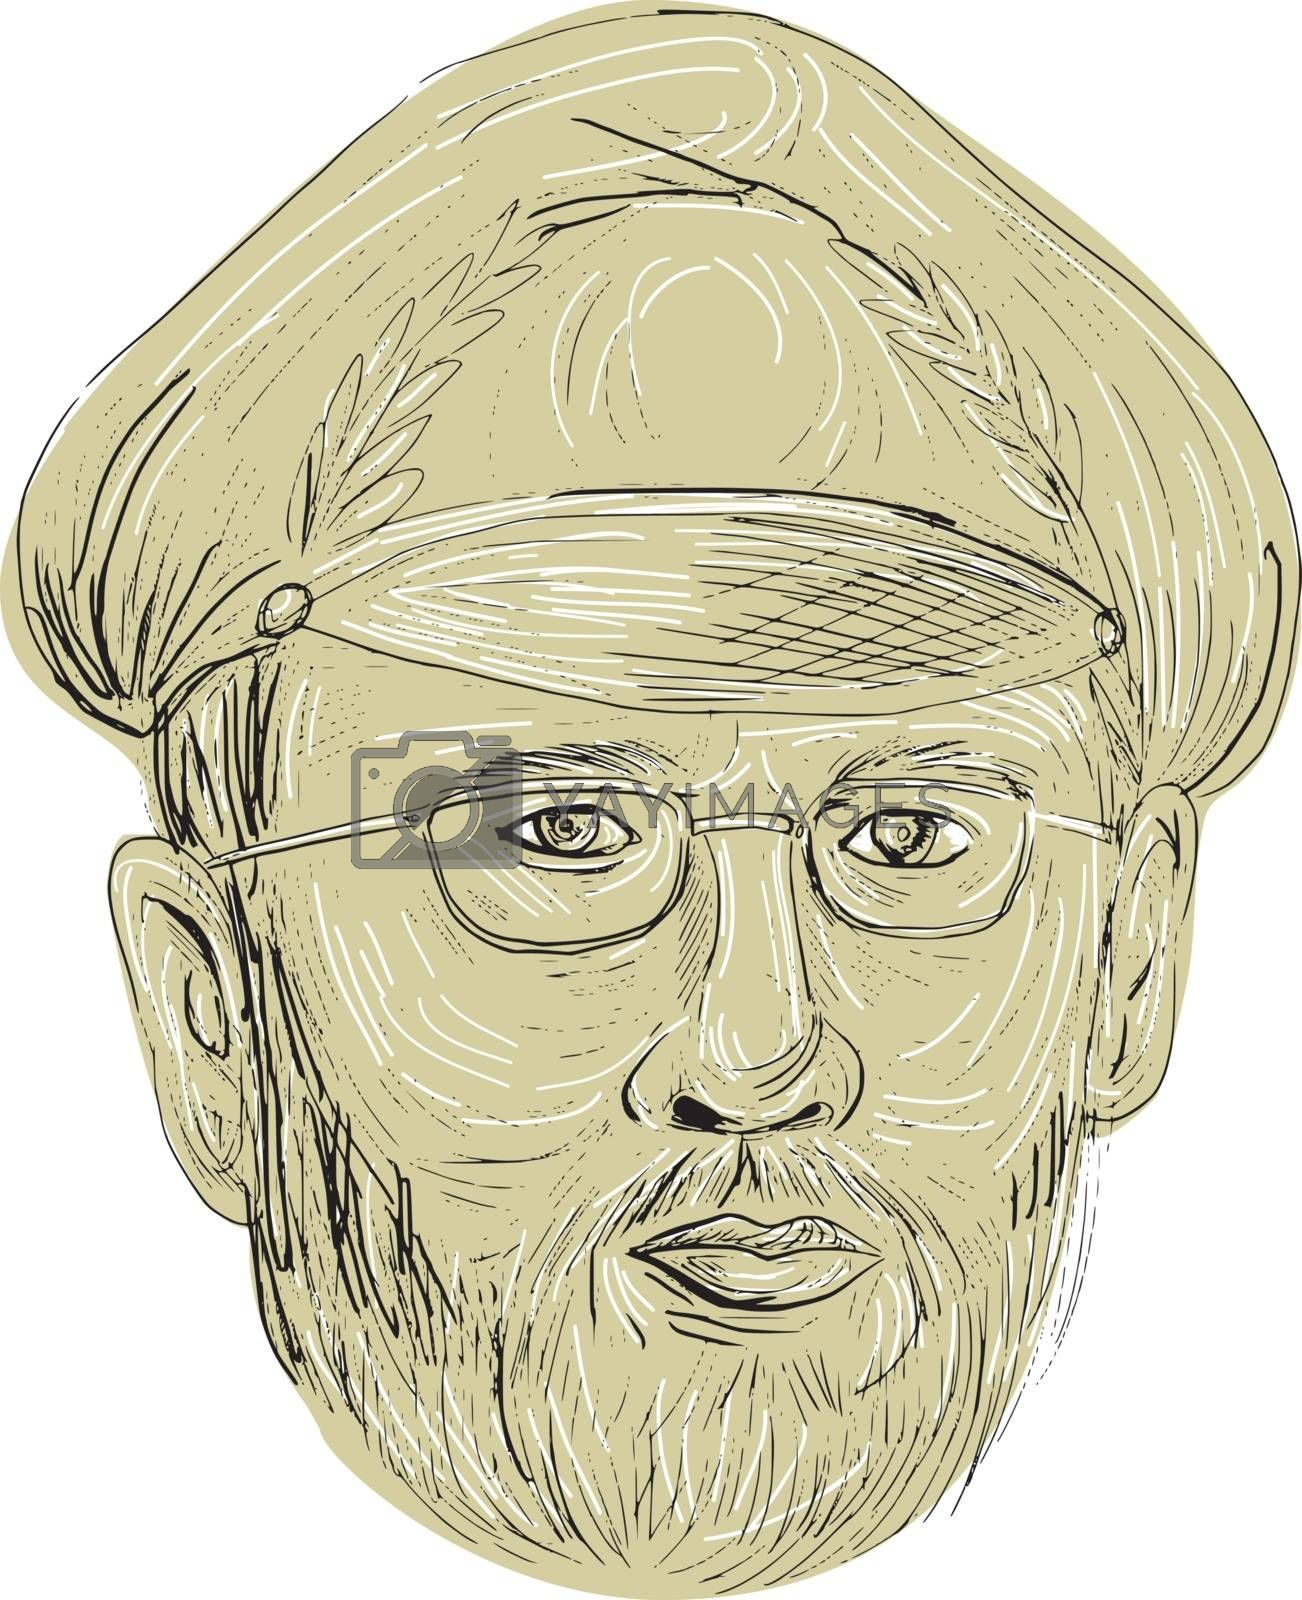 Drawing sketch style illustration of a Turkish general head wearing glasses and cap viewed from the front set on isolated white background.